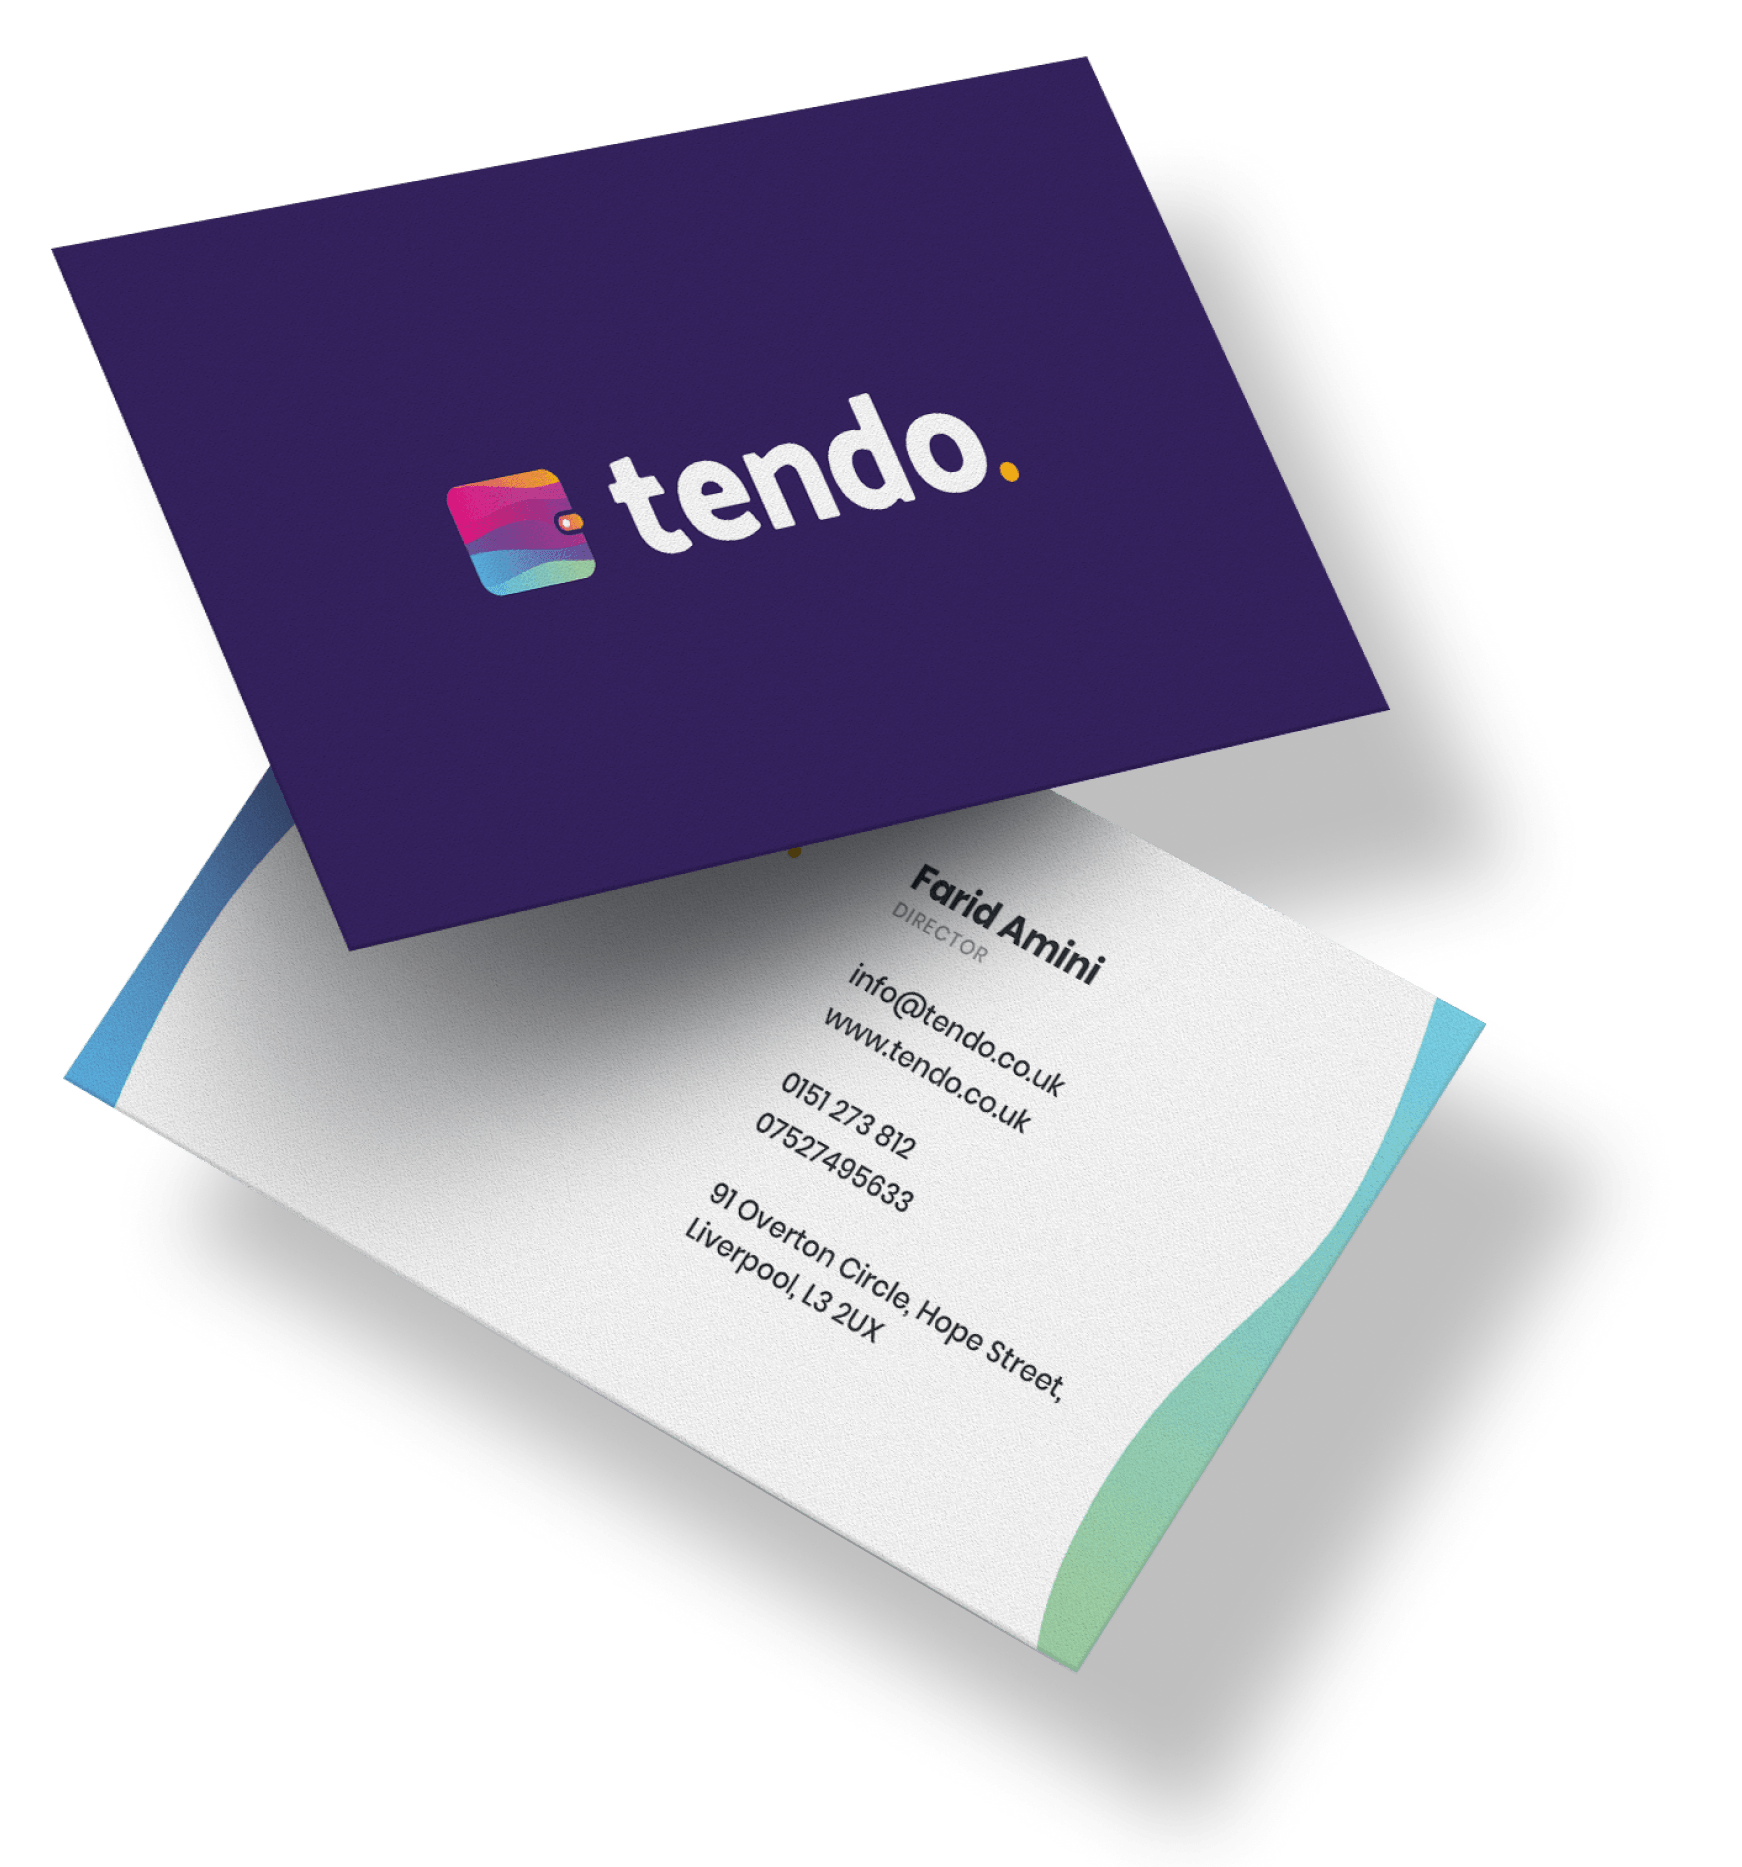 tendo business card